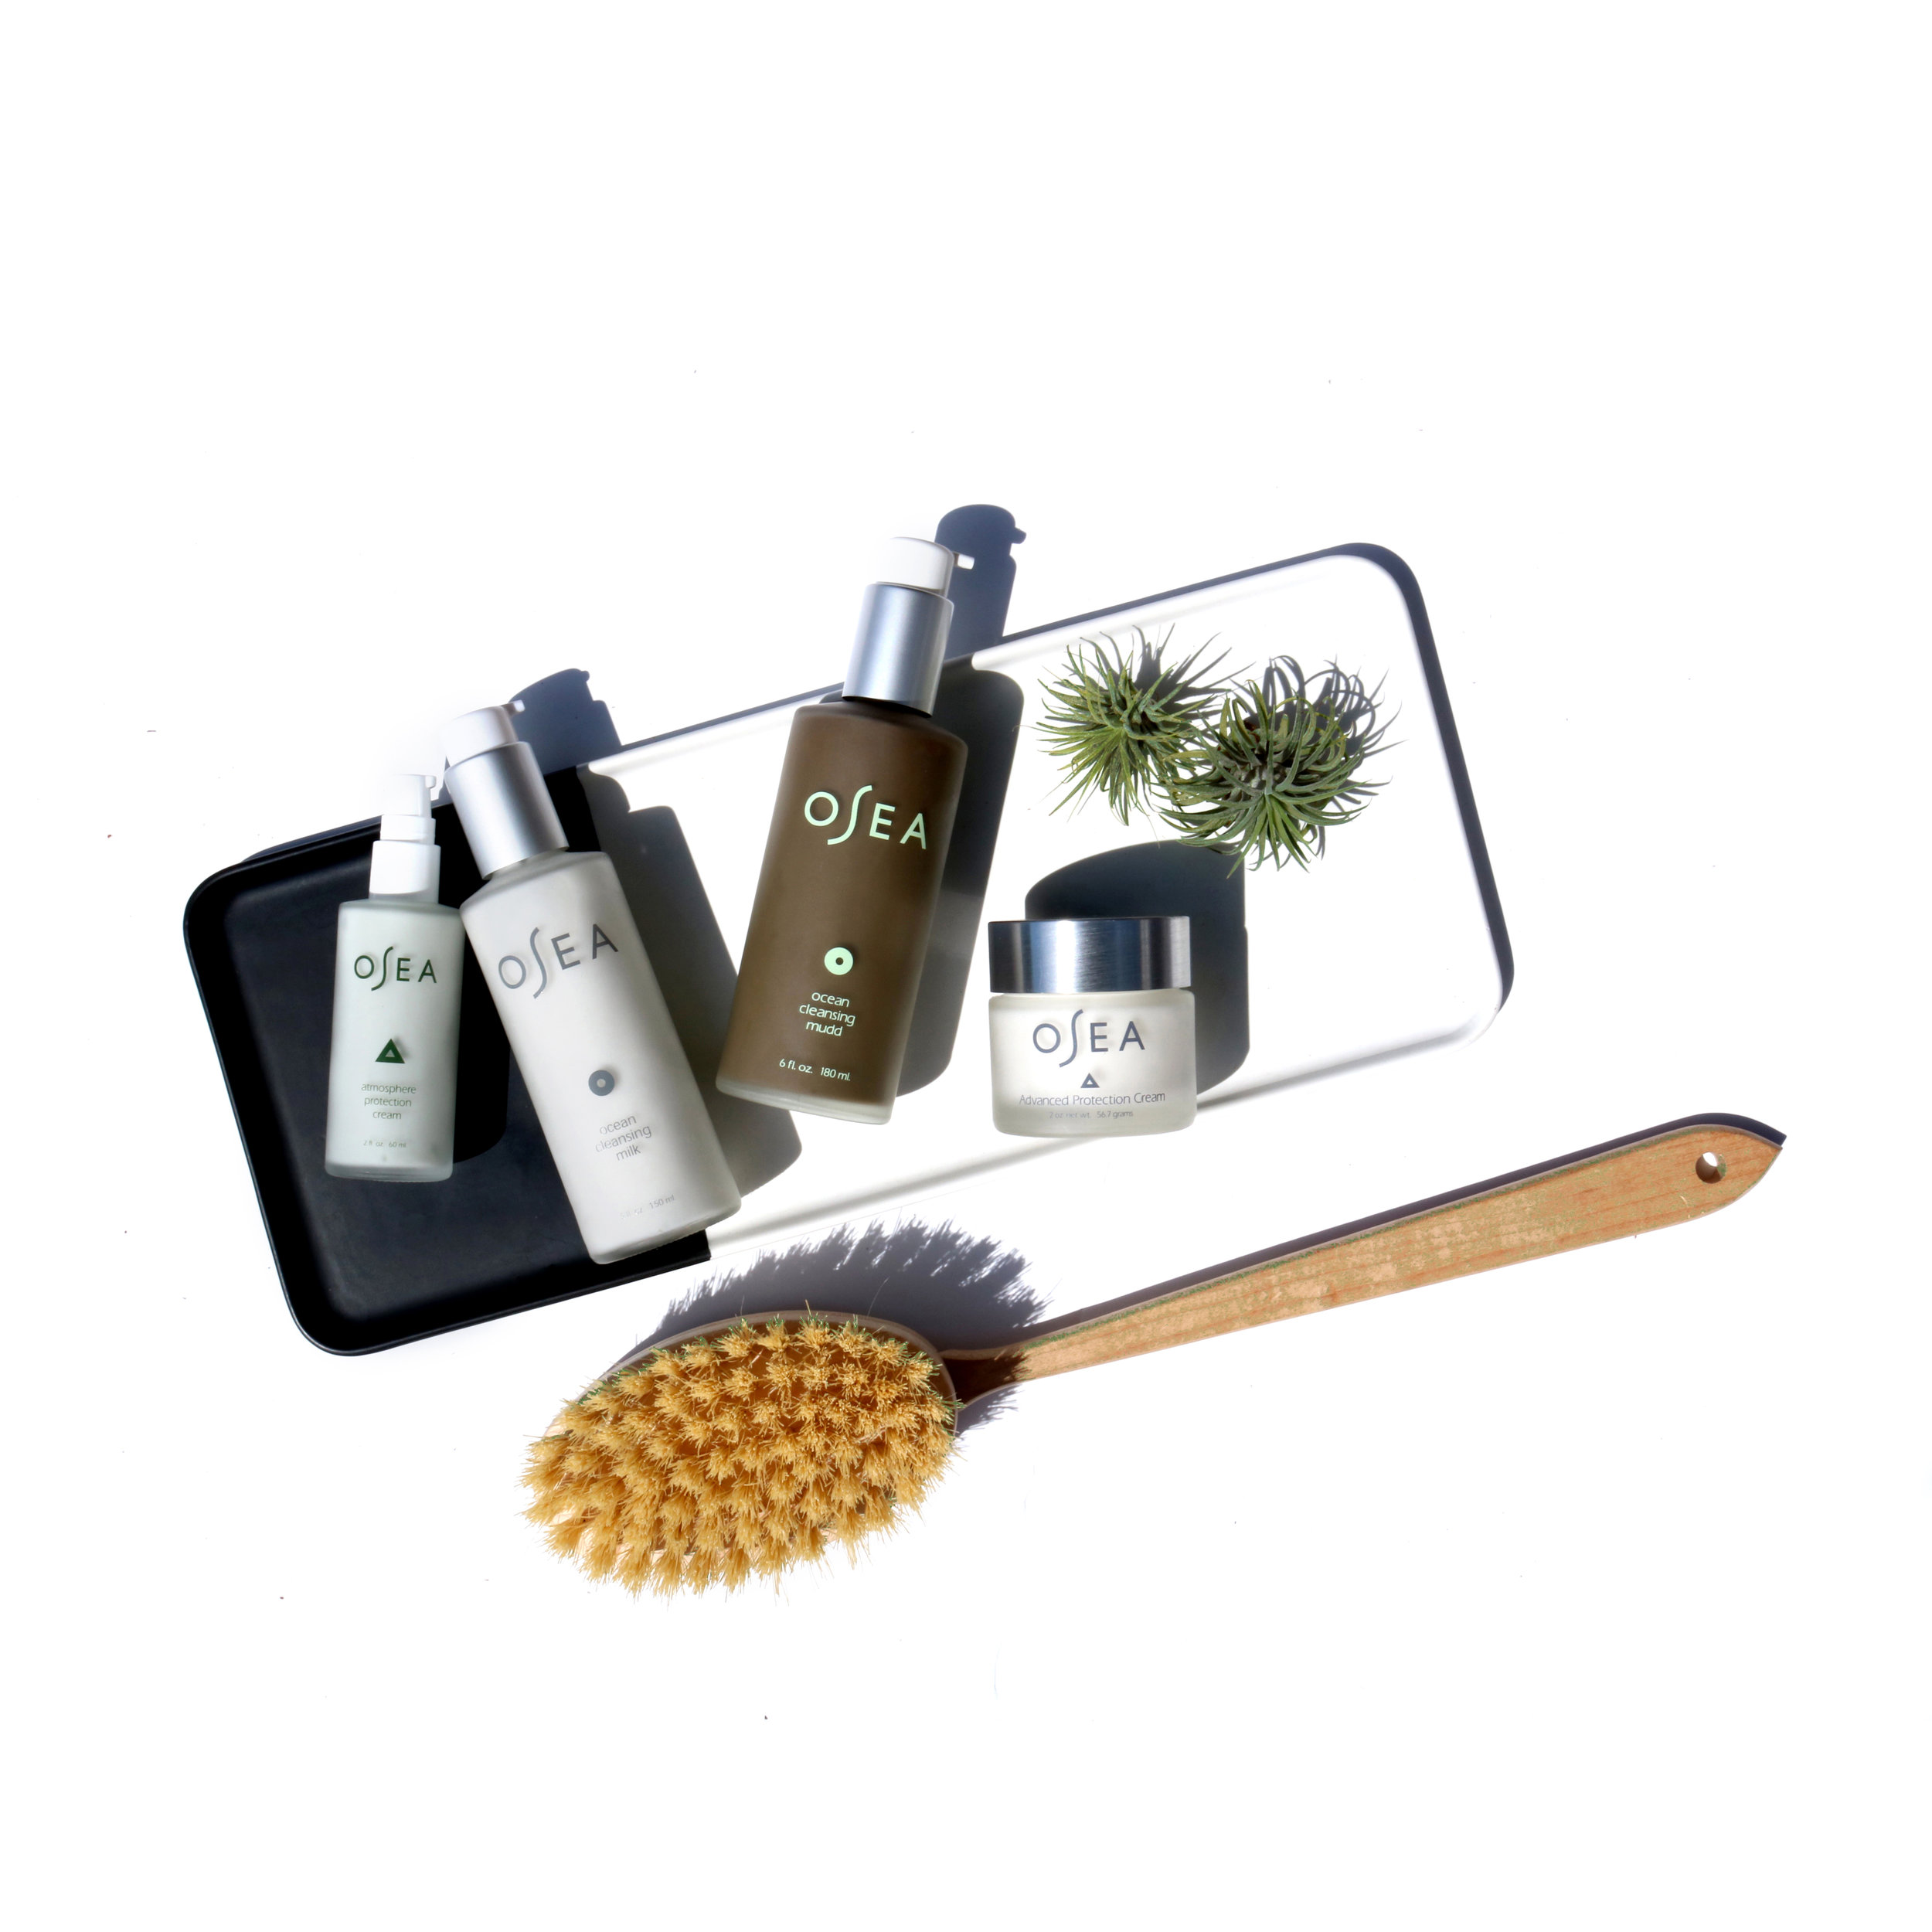 osea-group-lifestyle-plants-brush-spa.jpg